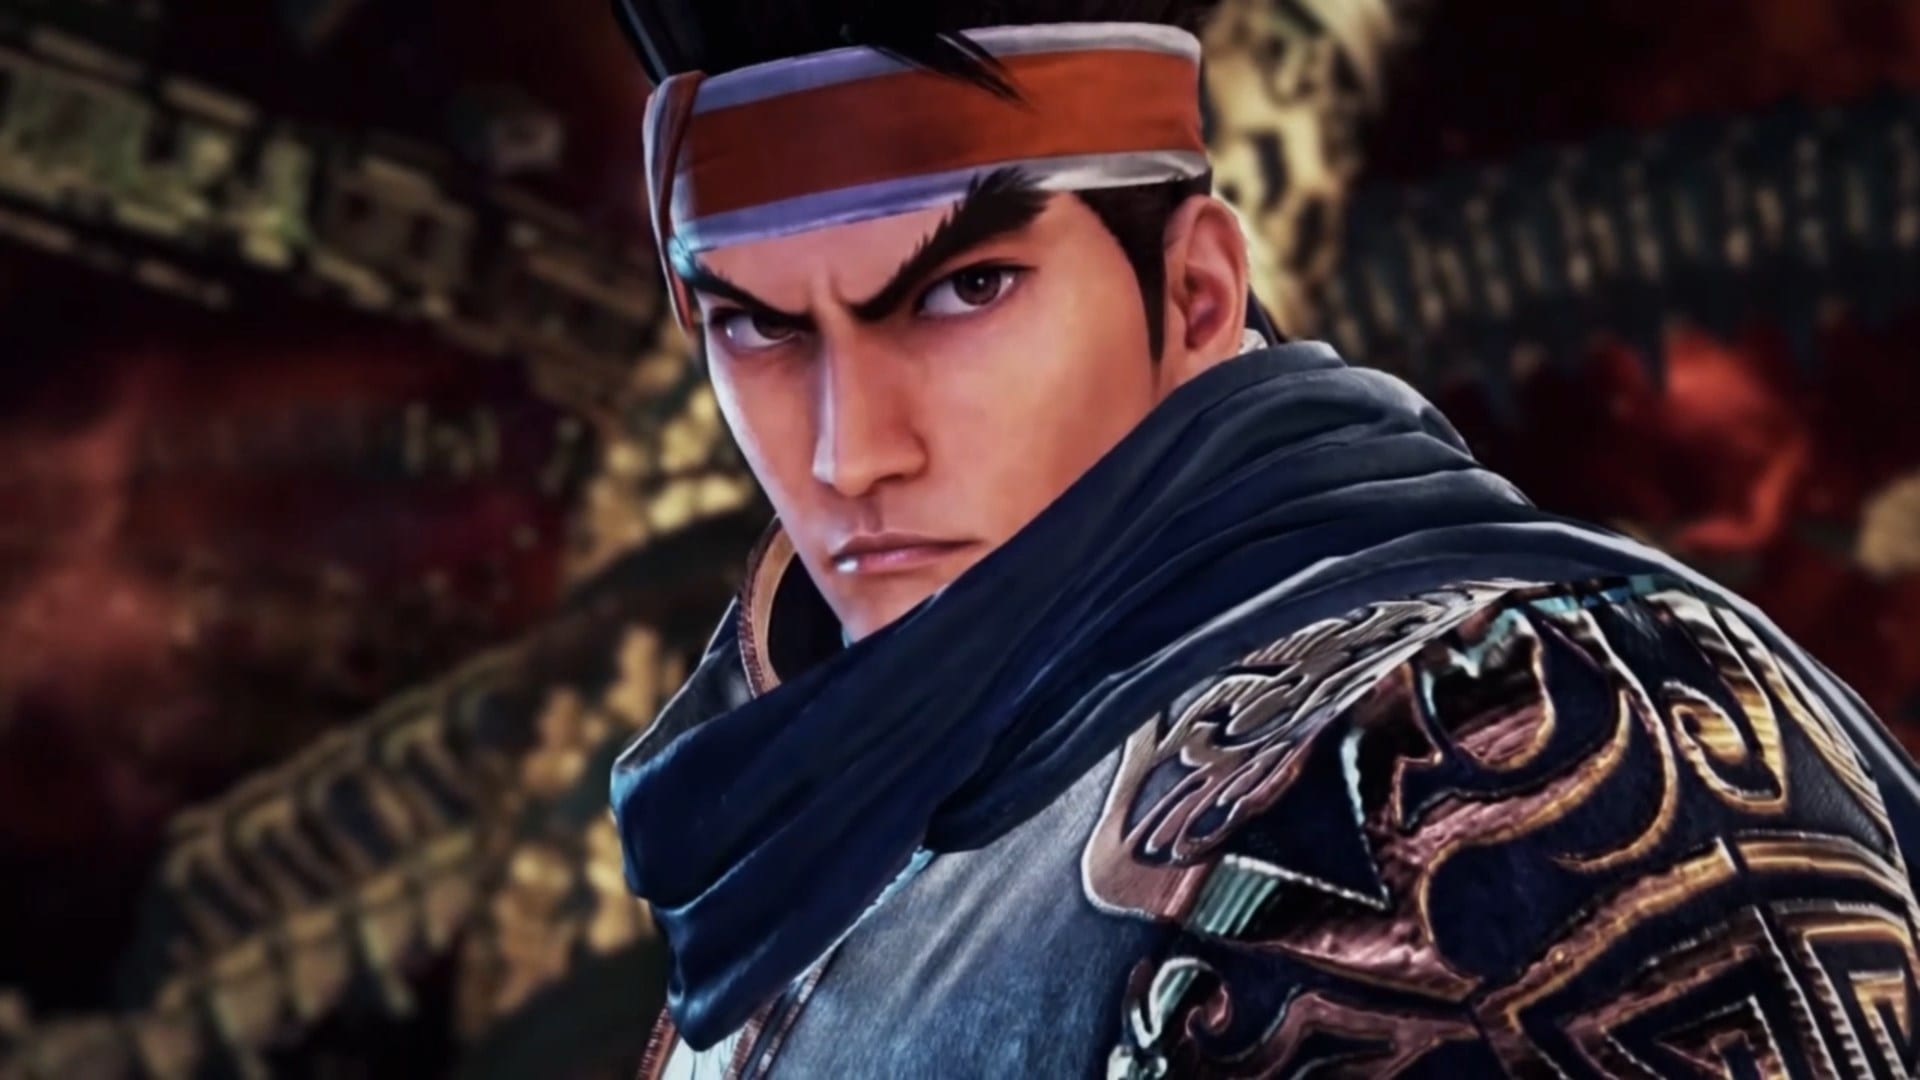 Hwang tornerà in SOULCALIBUR VI